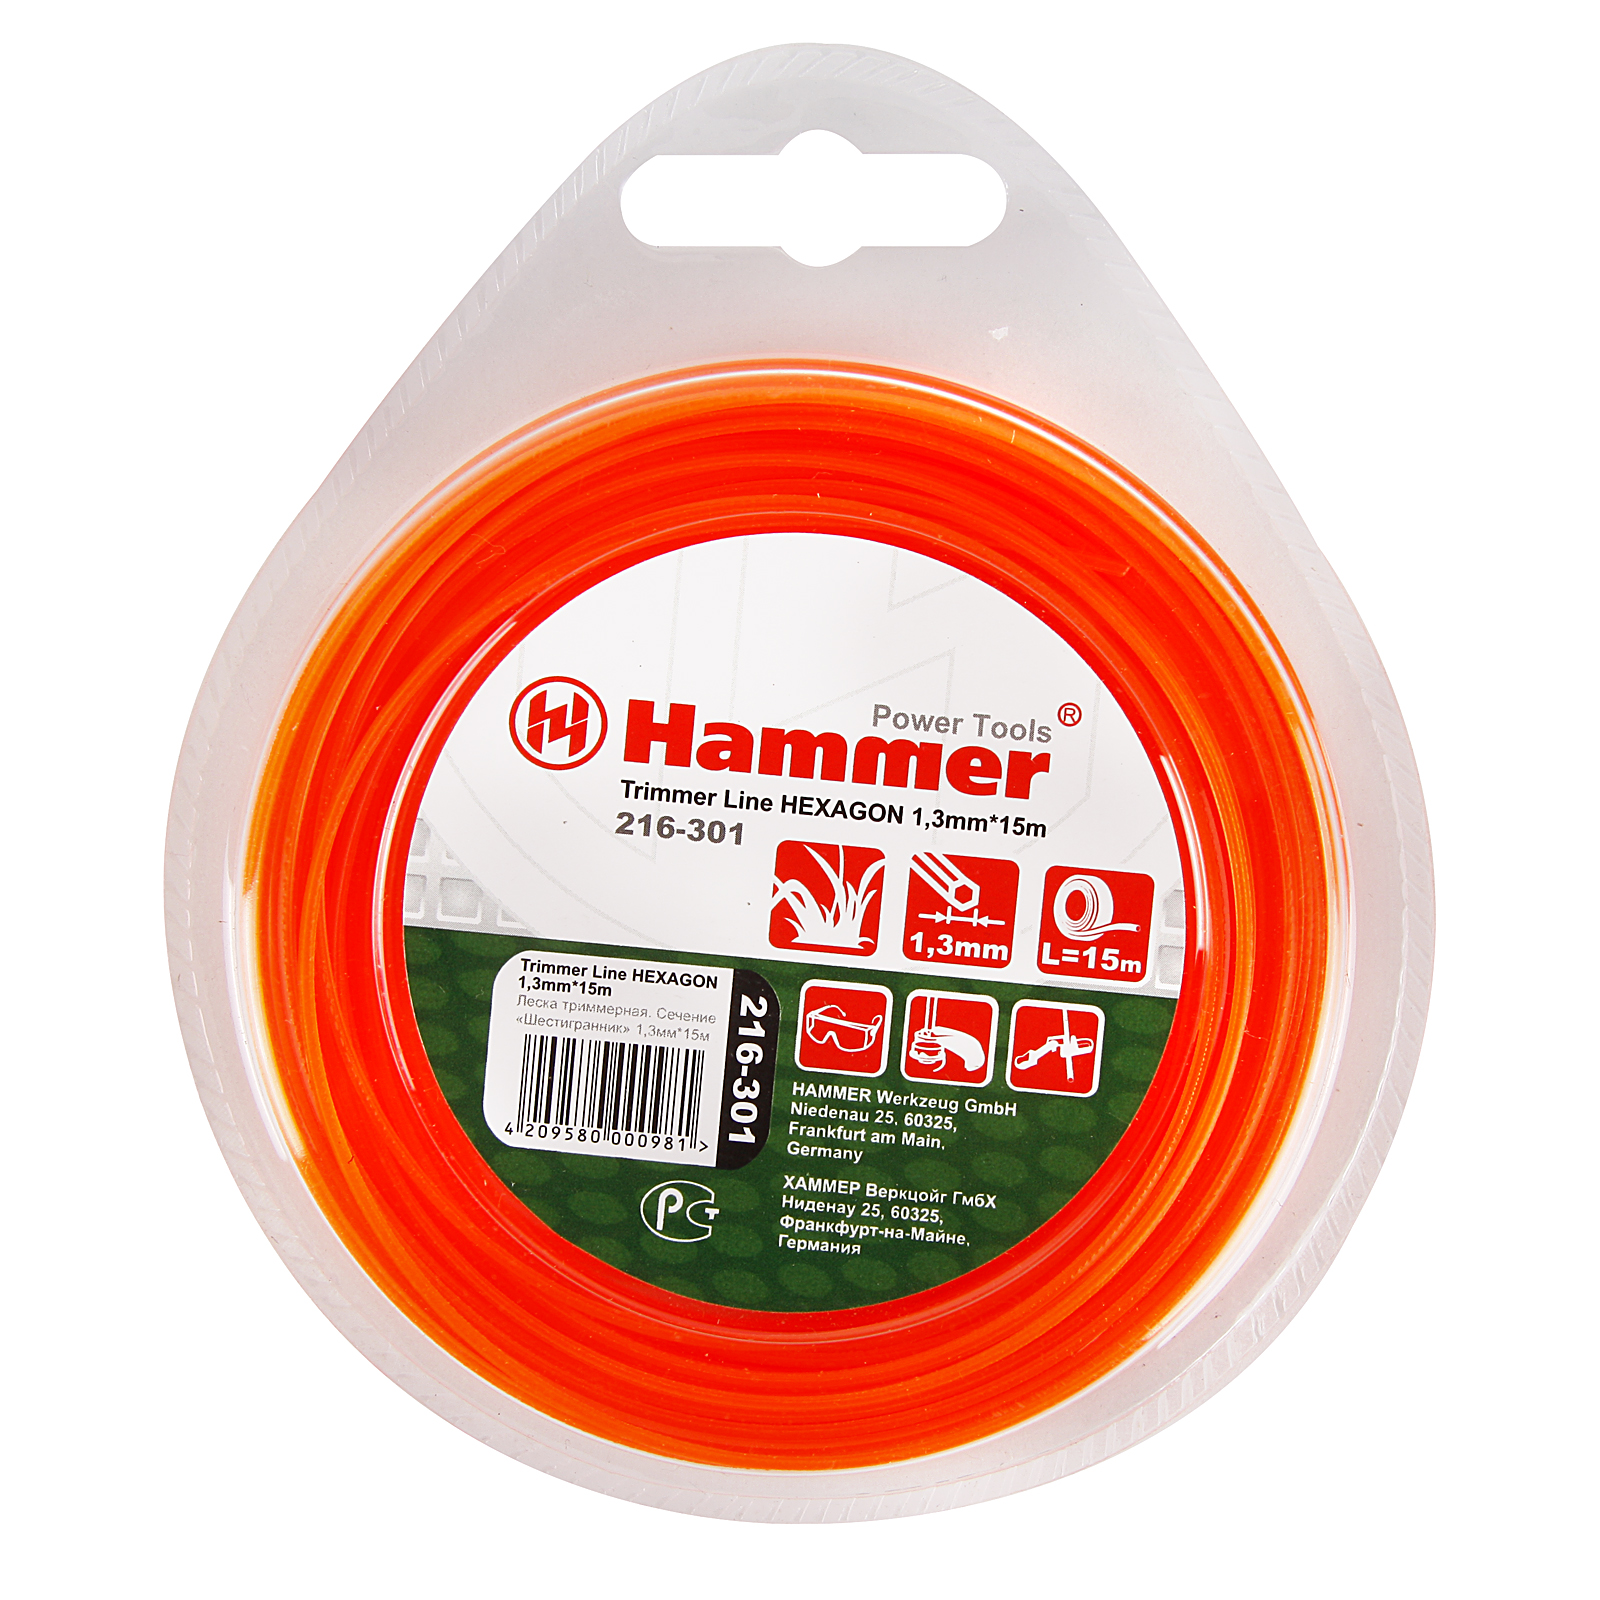 Леска для триммеров Hammer Tl hexagon 1.3mm x 15m плиткорез hammer plr450 flex